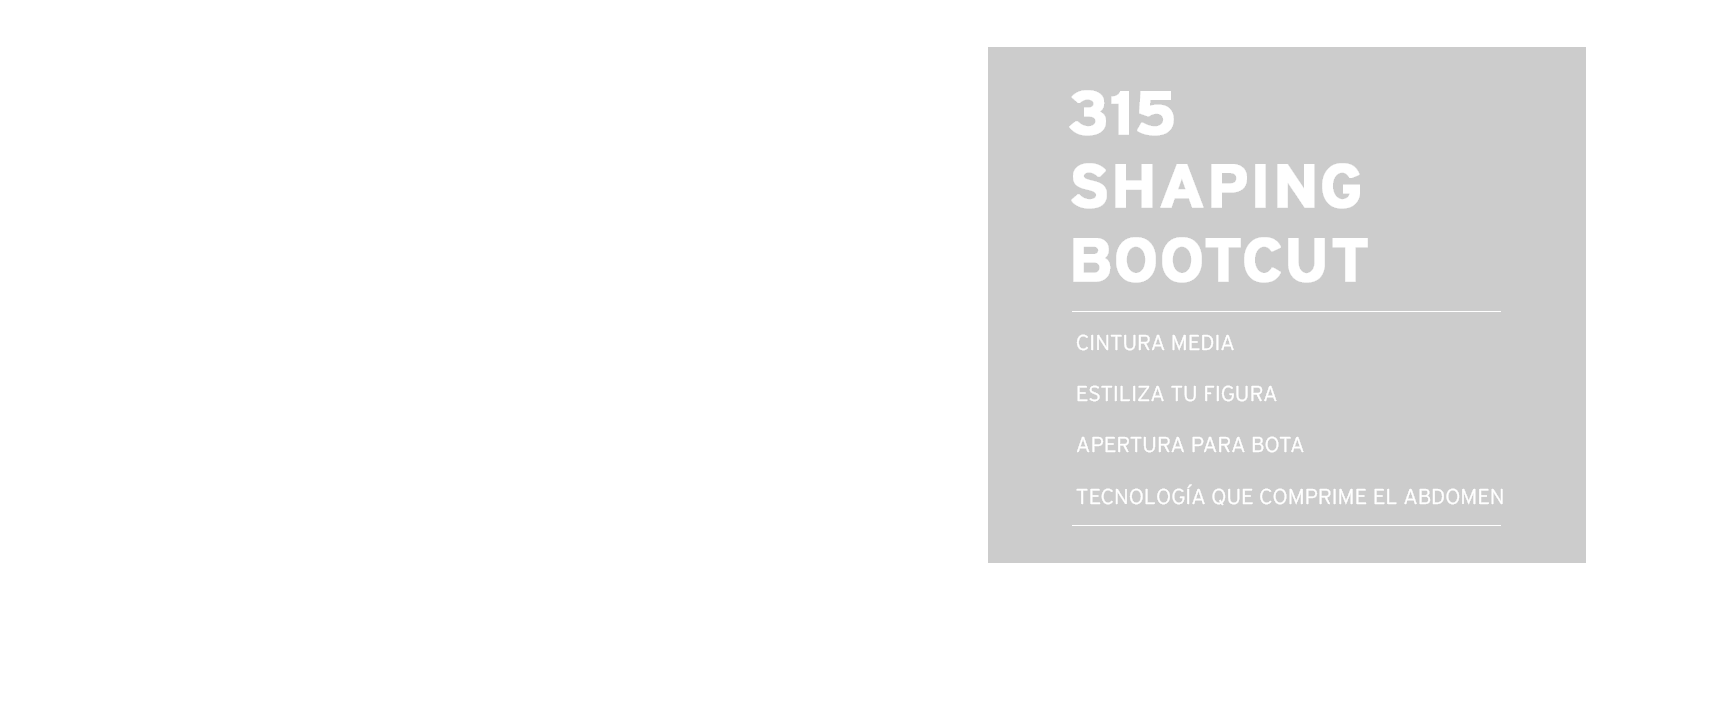 315 shaping bootcut